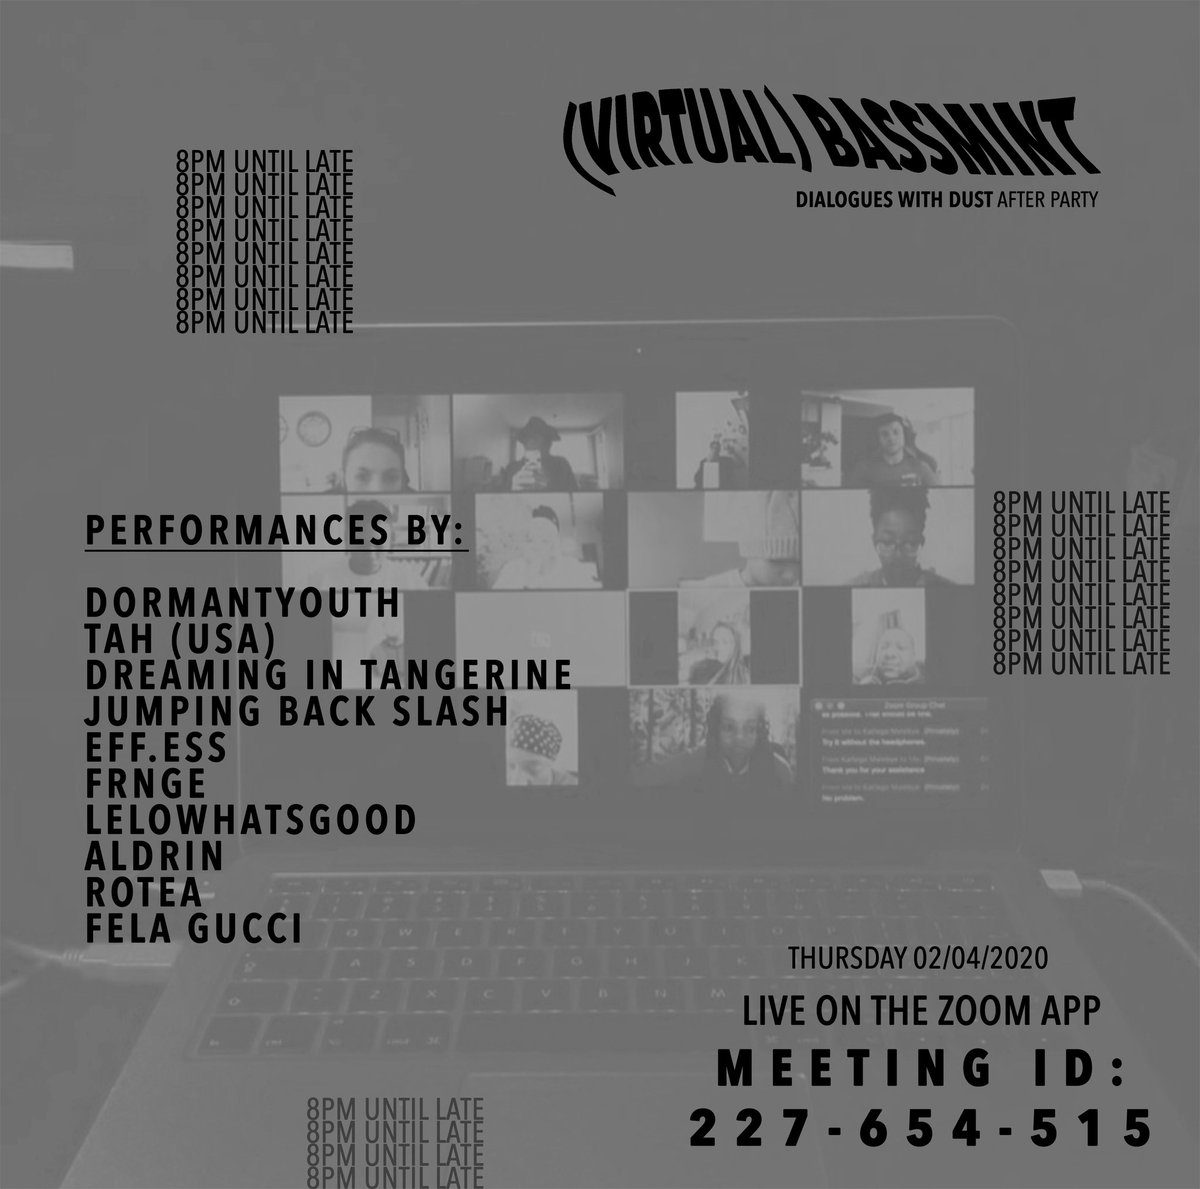 Guess what's going down on Thursday???  Back at it again with my favs for the Dialogues With Dust afterparty on Zoom. Brought to you by the Graduate School of Architecture at UJ. We on at 8pm, with a literally experimental, cross-timezone B2B with myself & Tah   Tune in @ 8 pic.twitter.com/2oBZHBPEKc